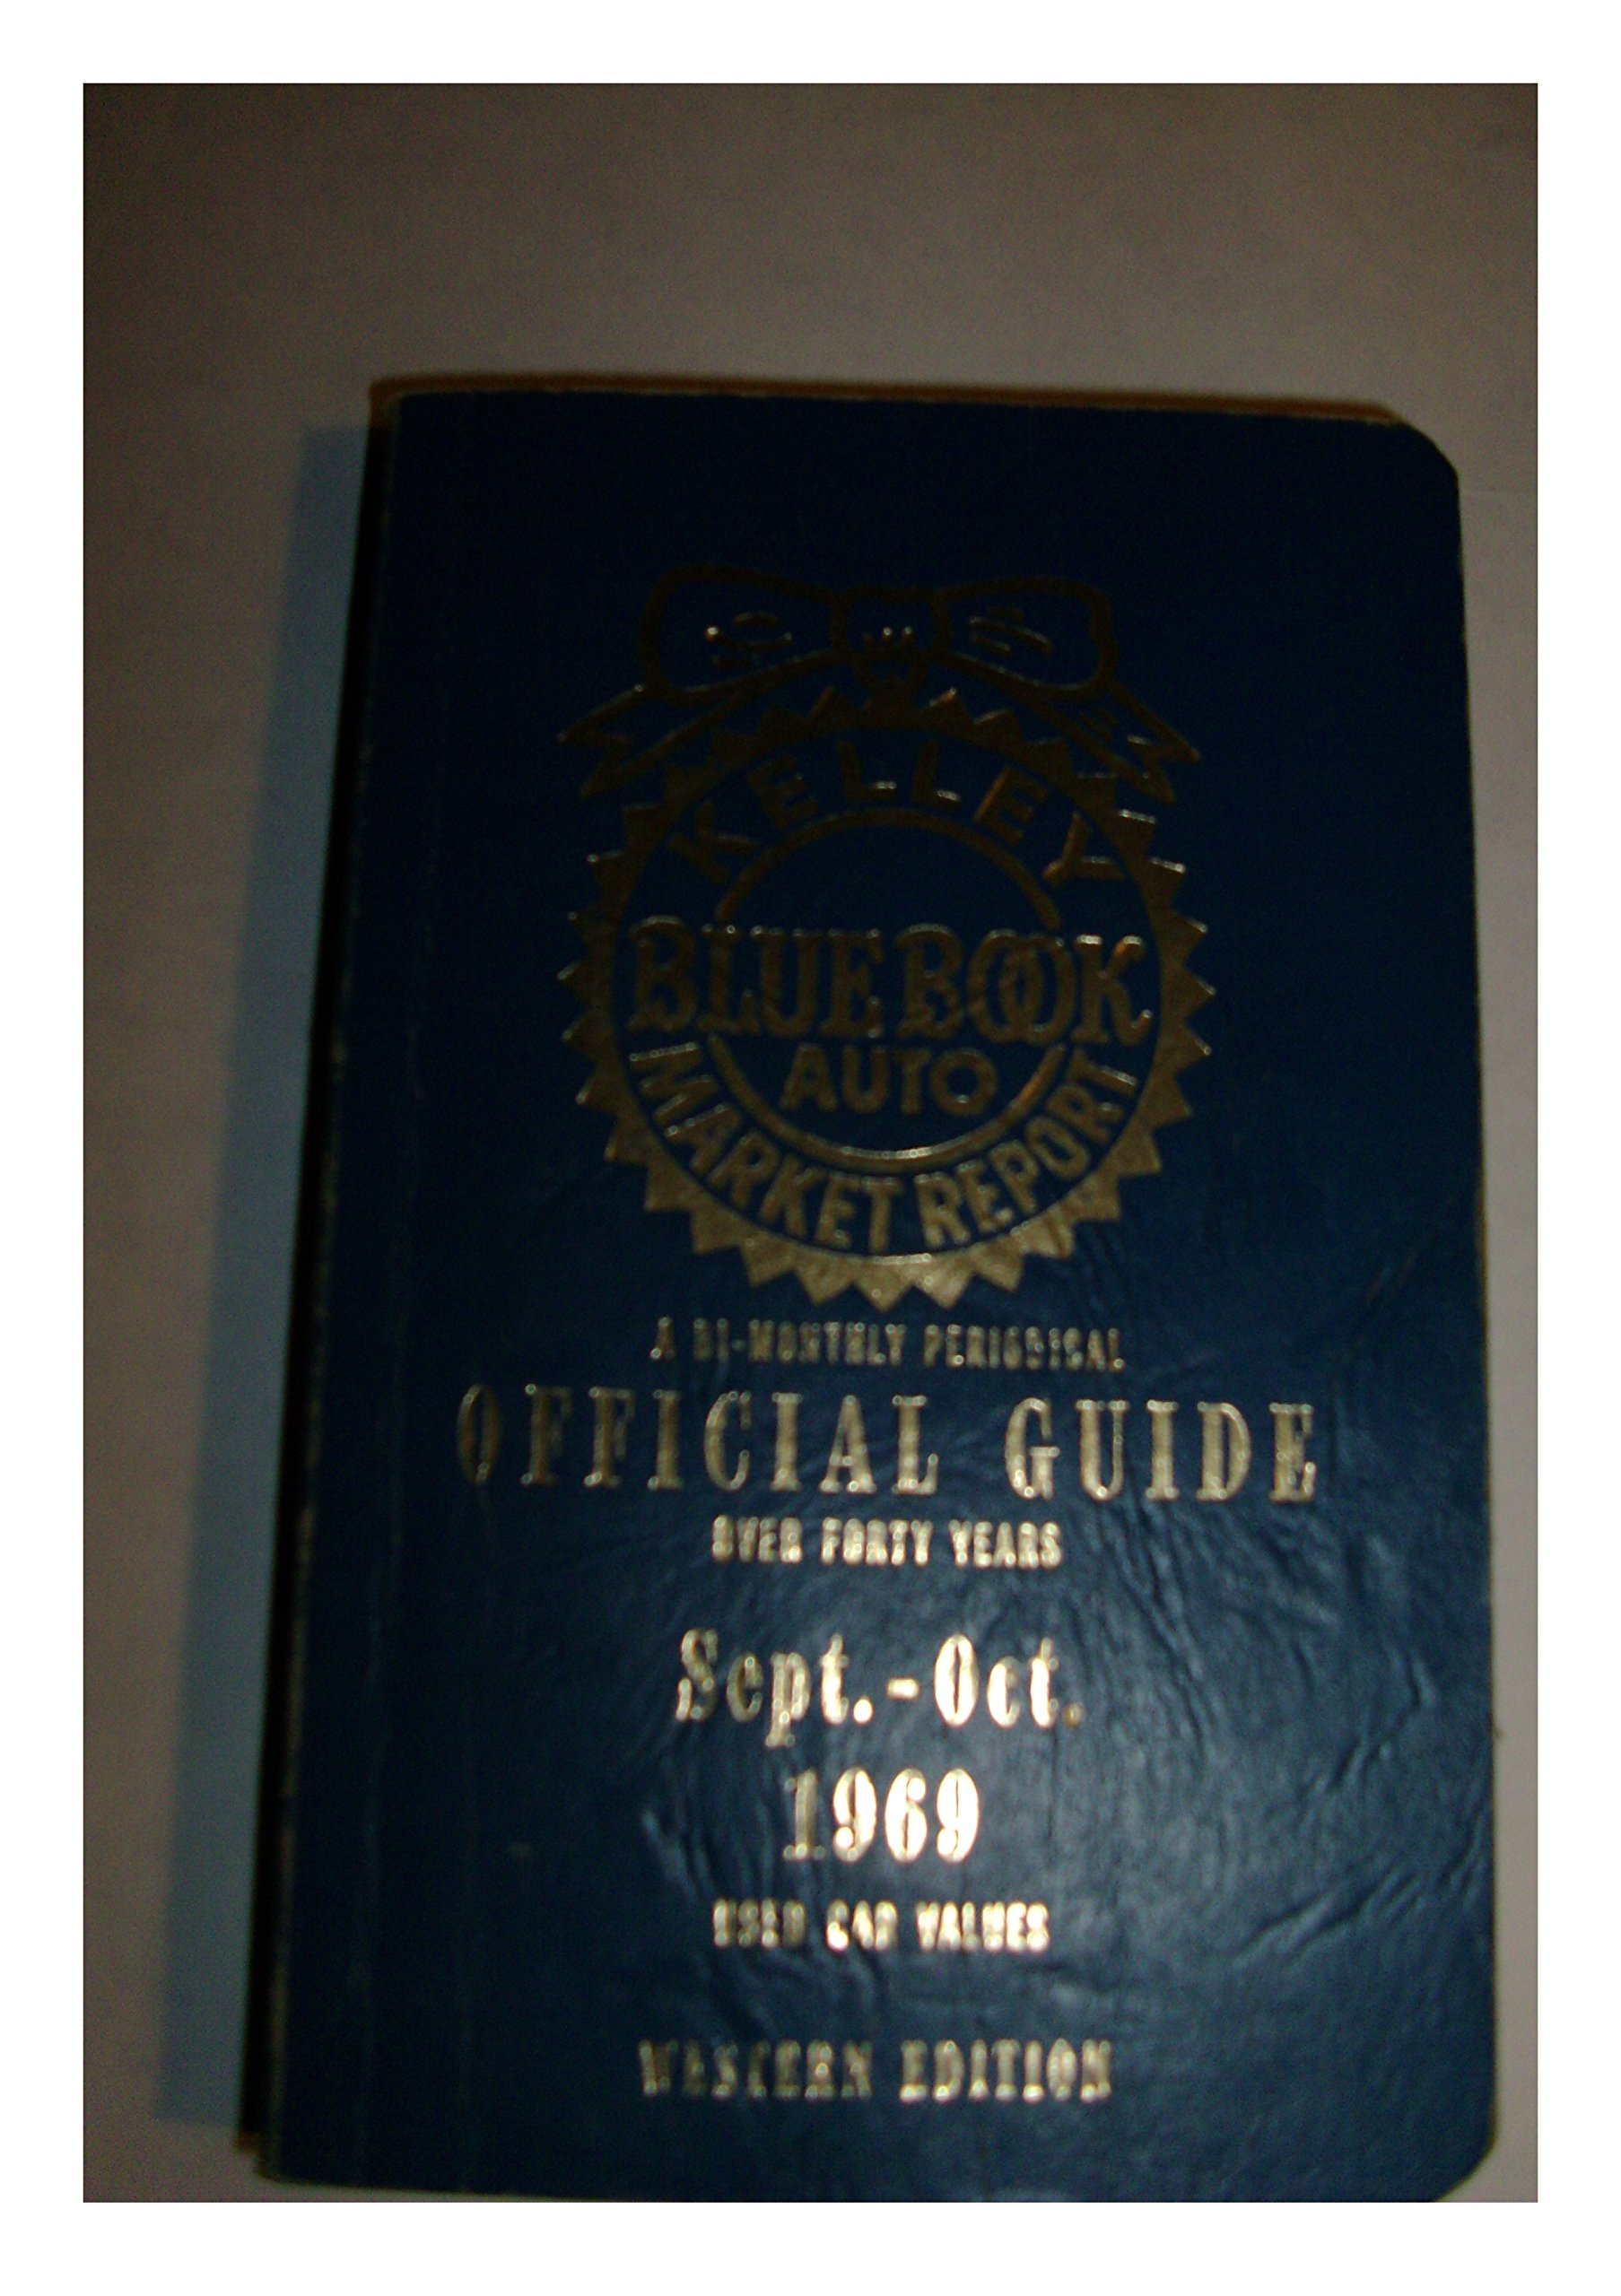 Kelley Blue Book 1969 Sept Oct Official Guide Used Car Values Western Edition S H Buster Kelley Robert S Kelley Bill Ross Amazon Com Books